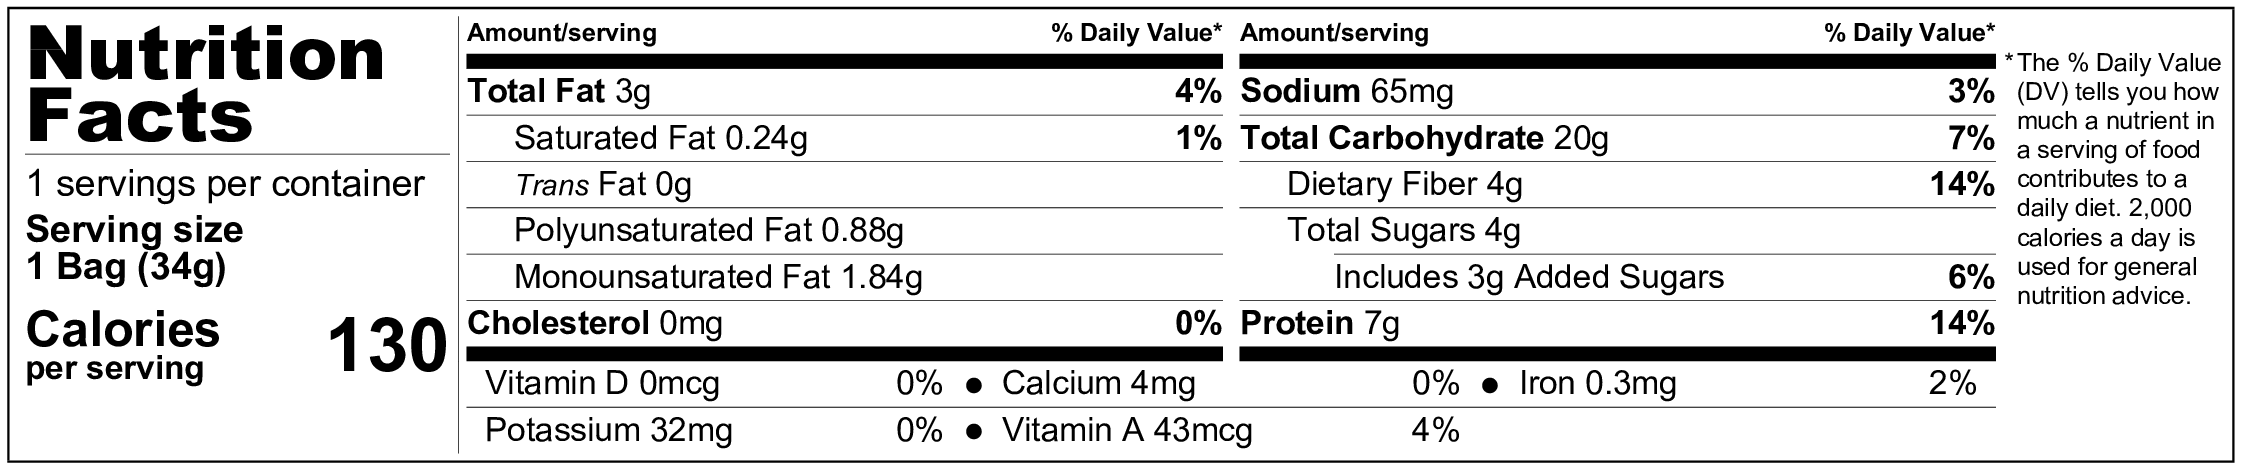 Nutrition facts PLANETARIANS Sunflower Chips Sweetly Cinnamon Horizontal.png